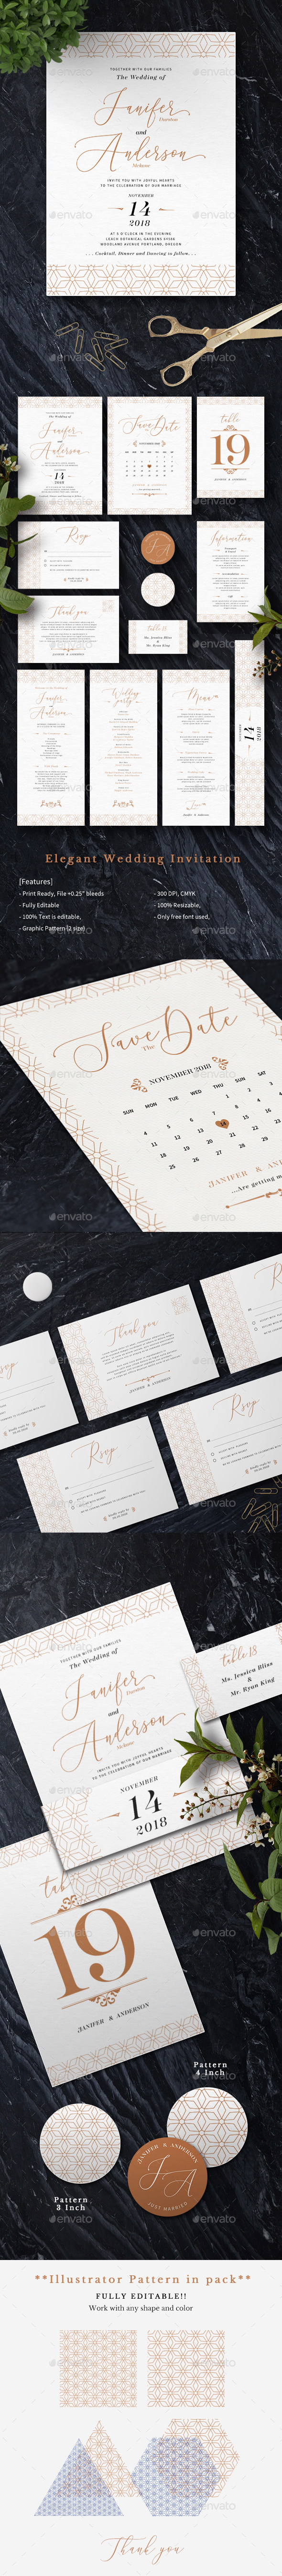 Elegant Wedding Invitation - Cards & Invites Print Templates